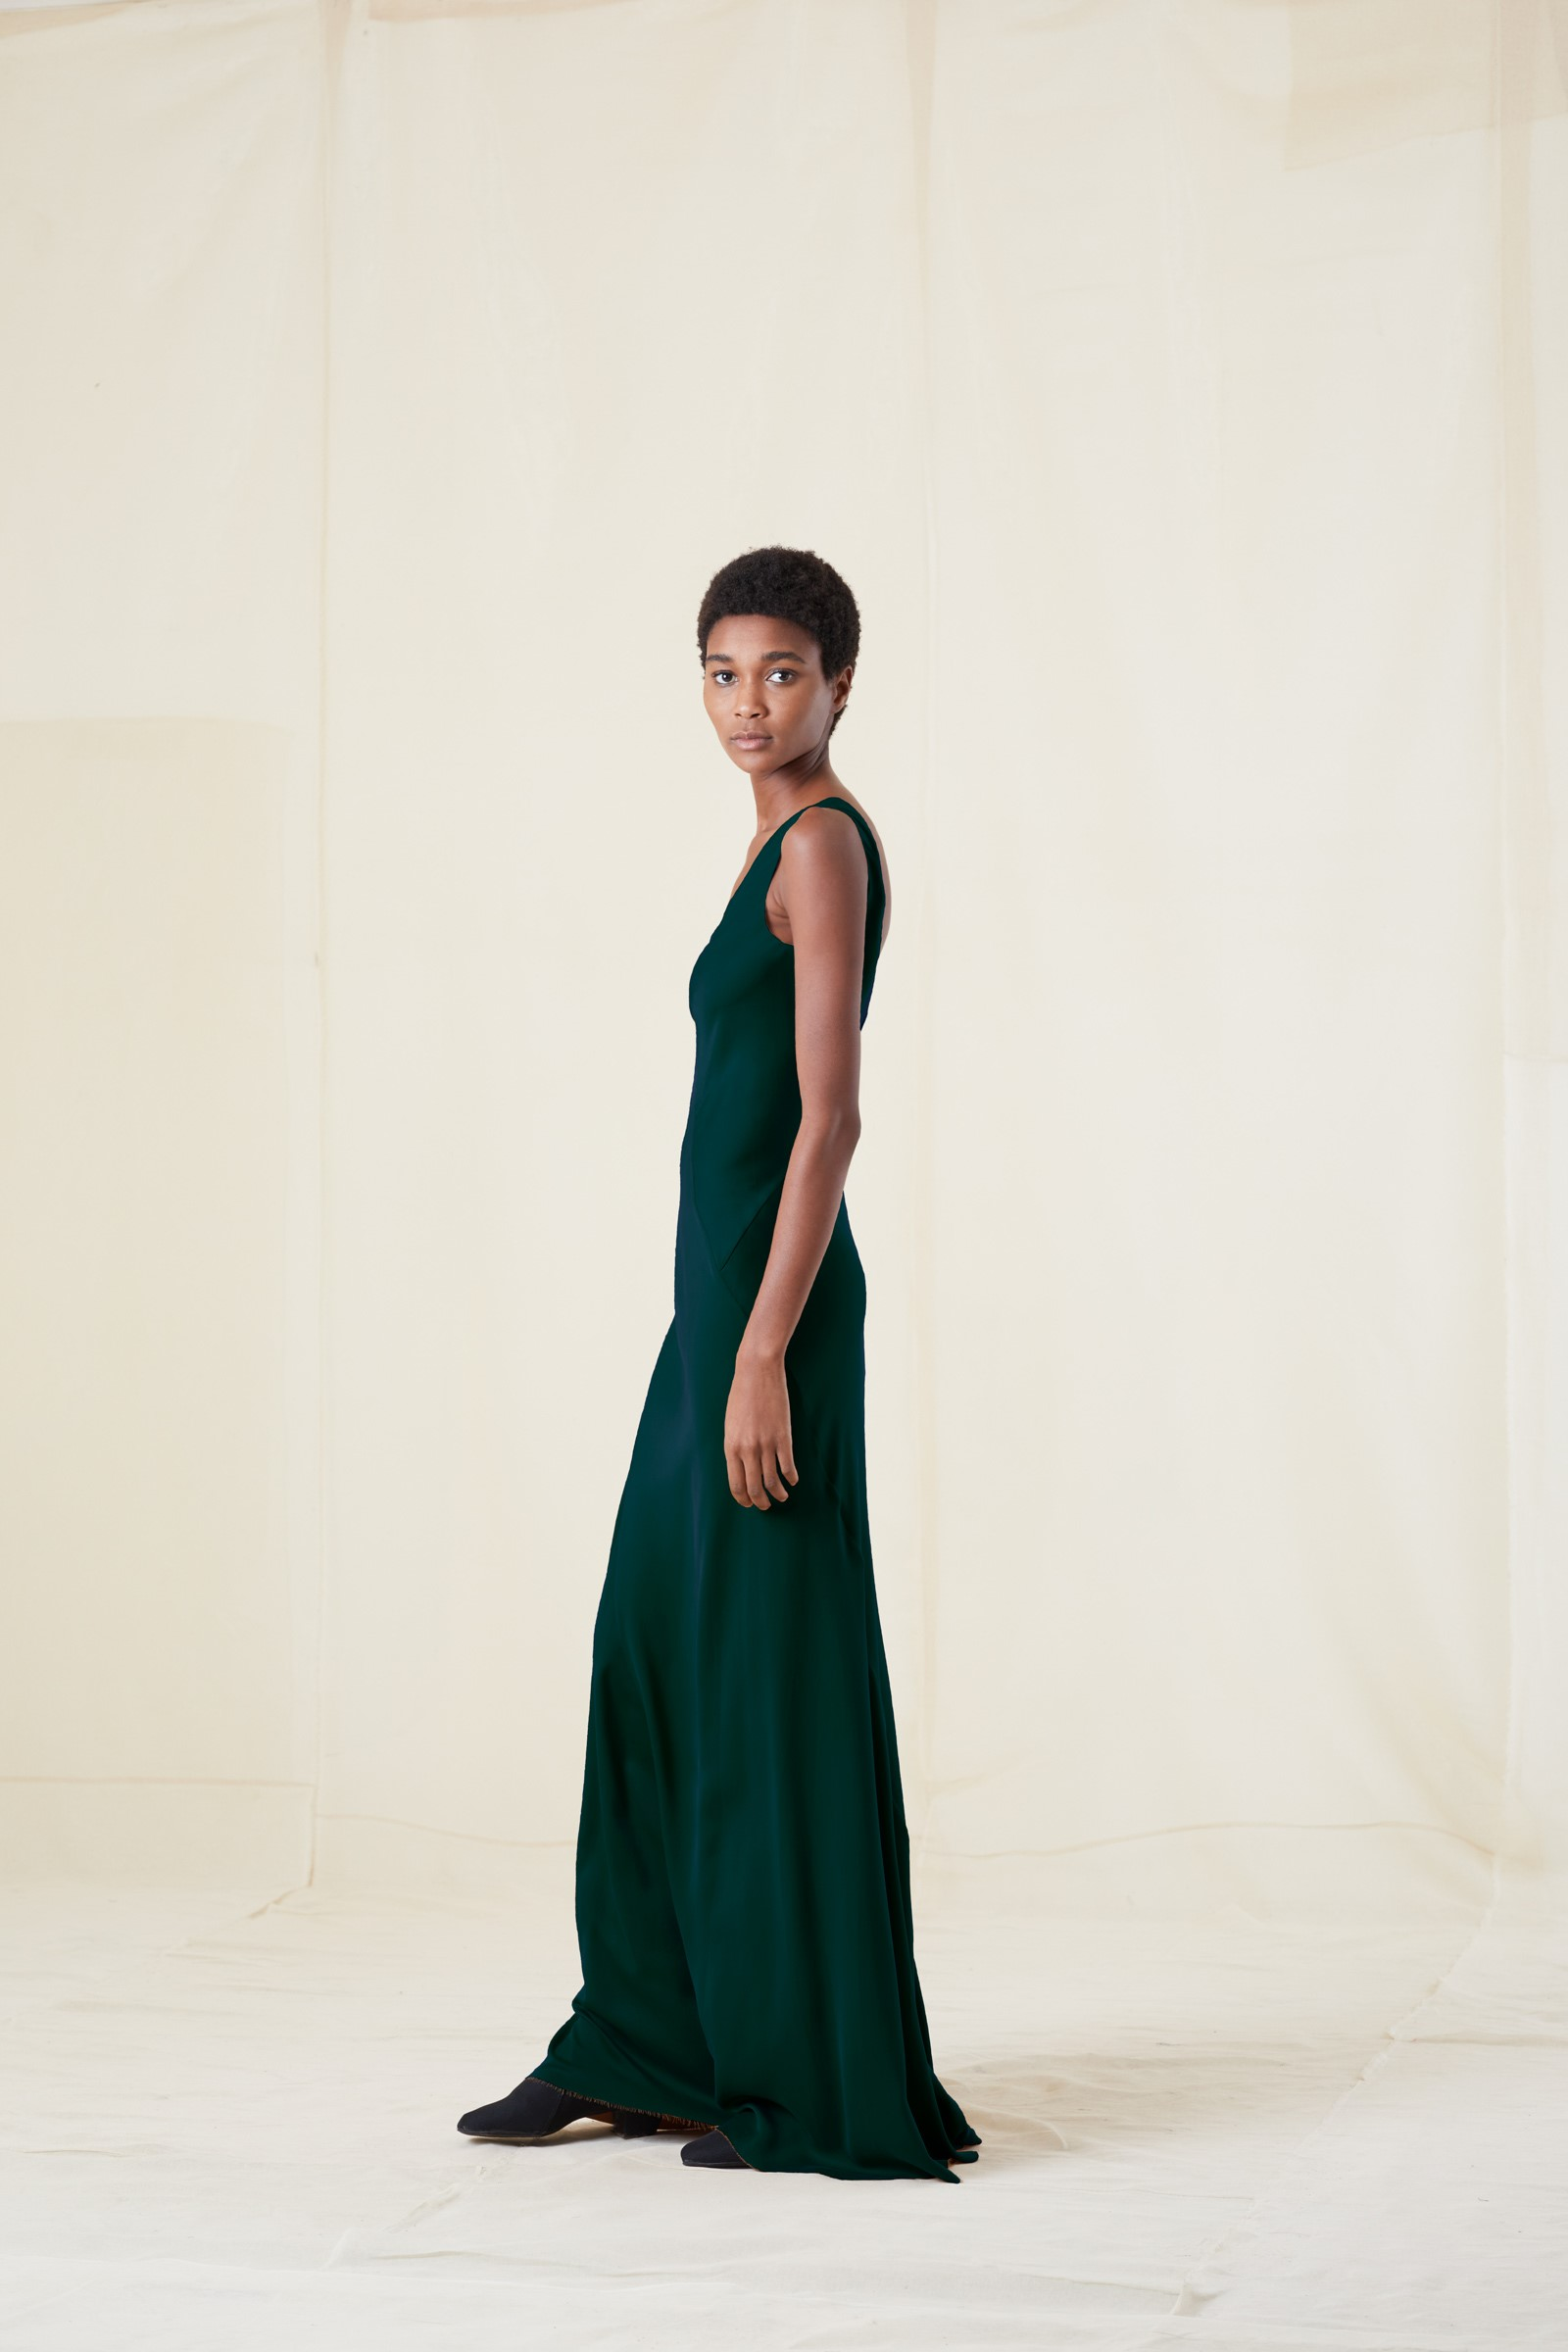 DONNA, GREEN SILK LONG DRESS - Cortana